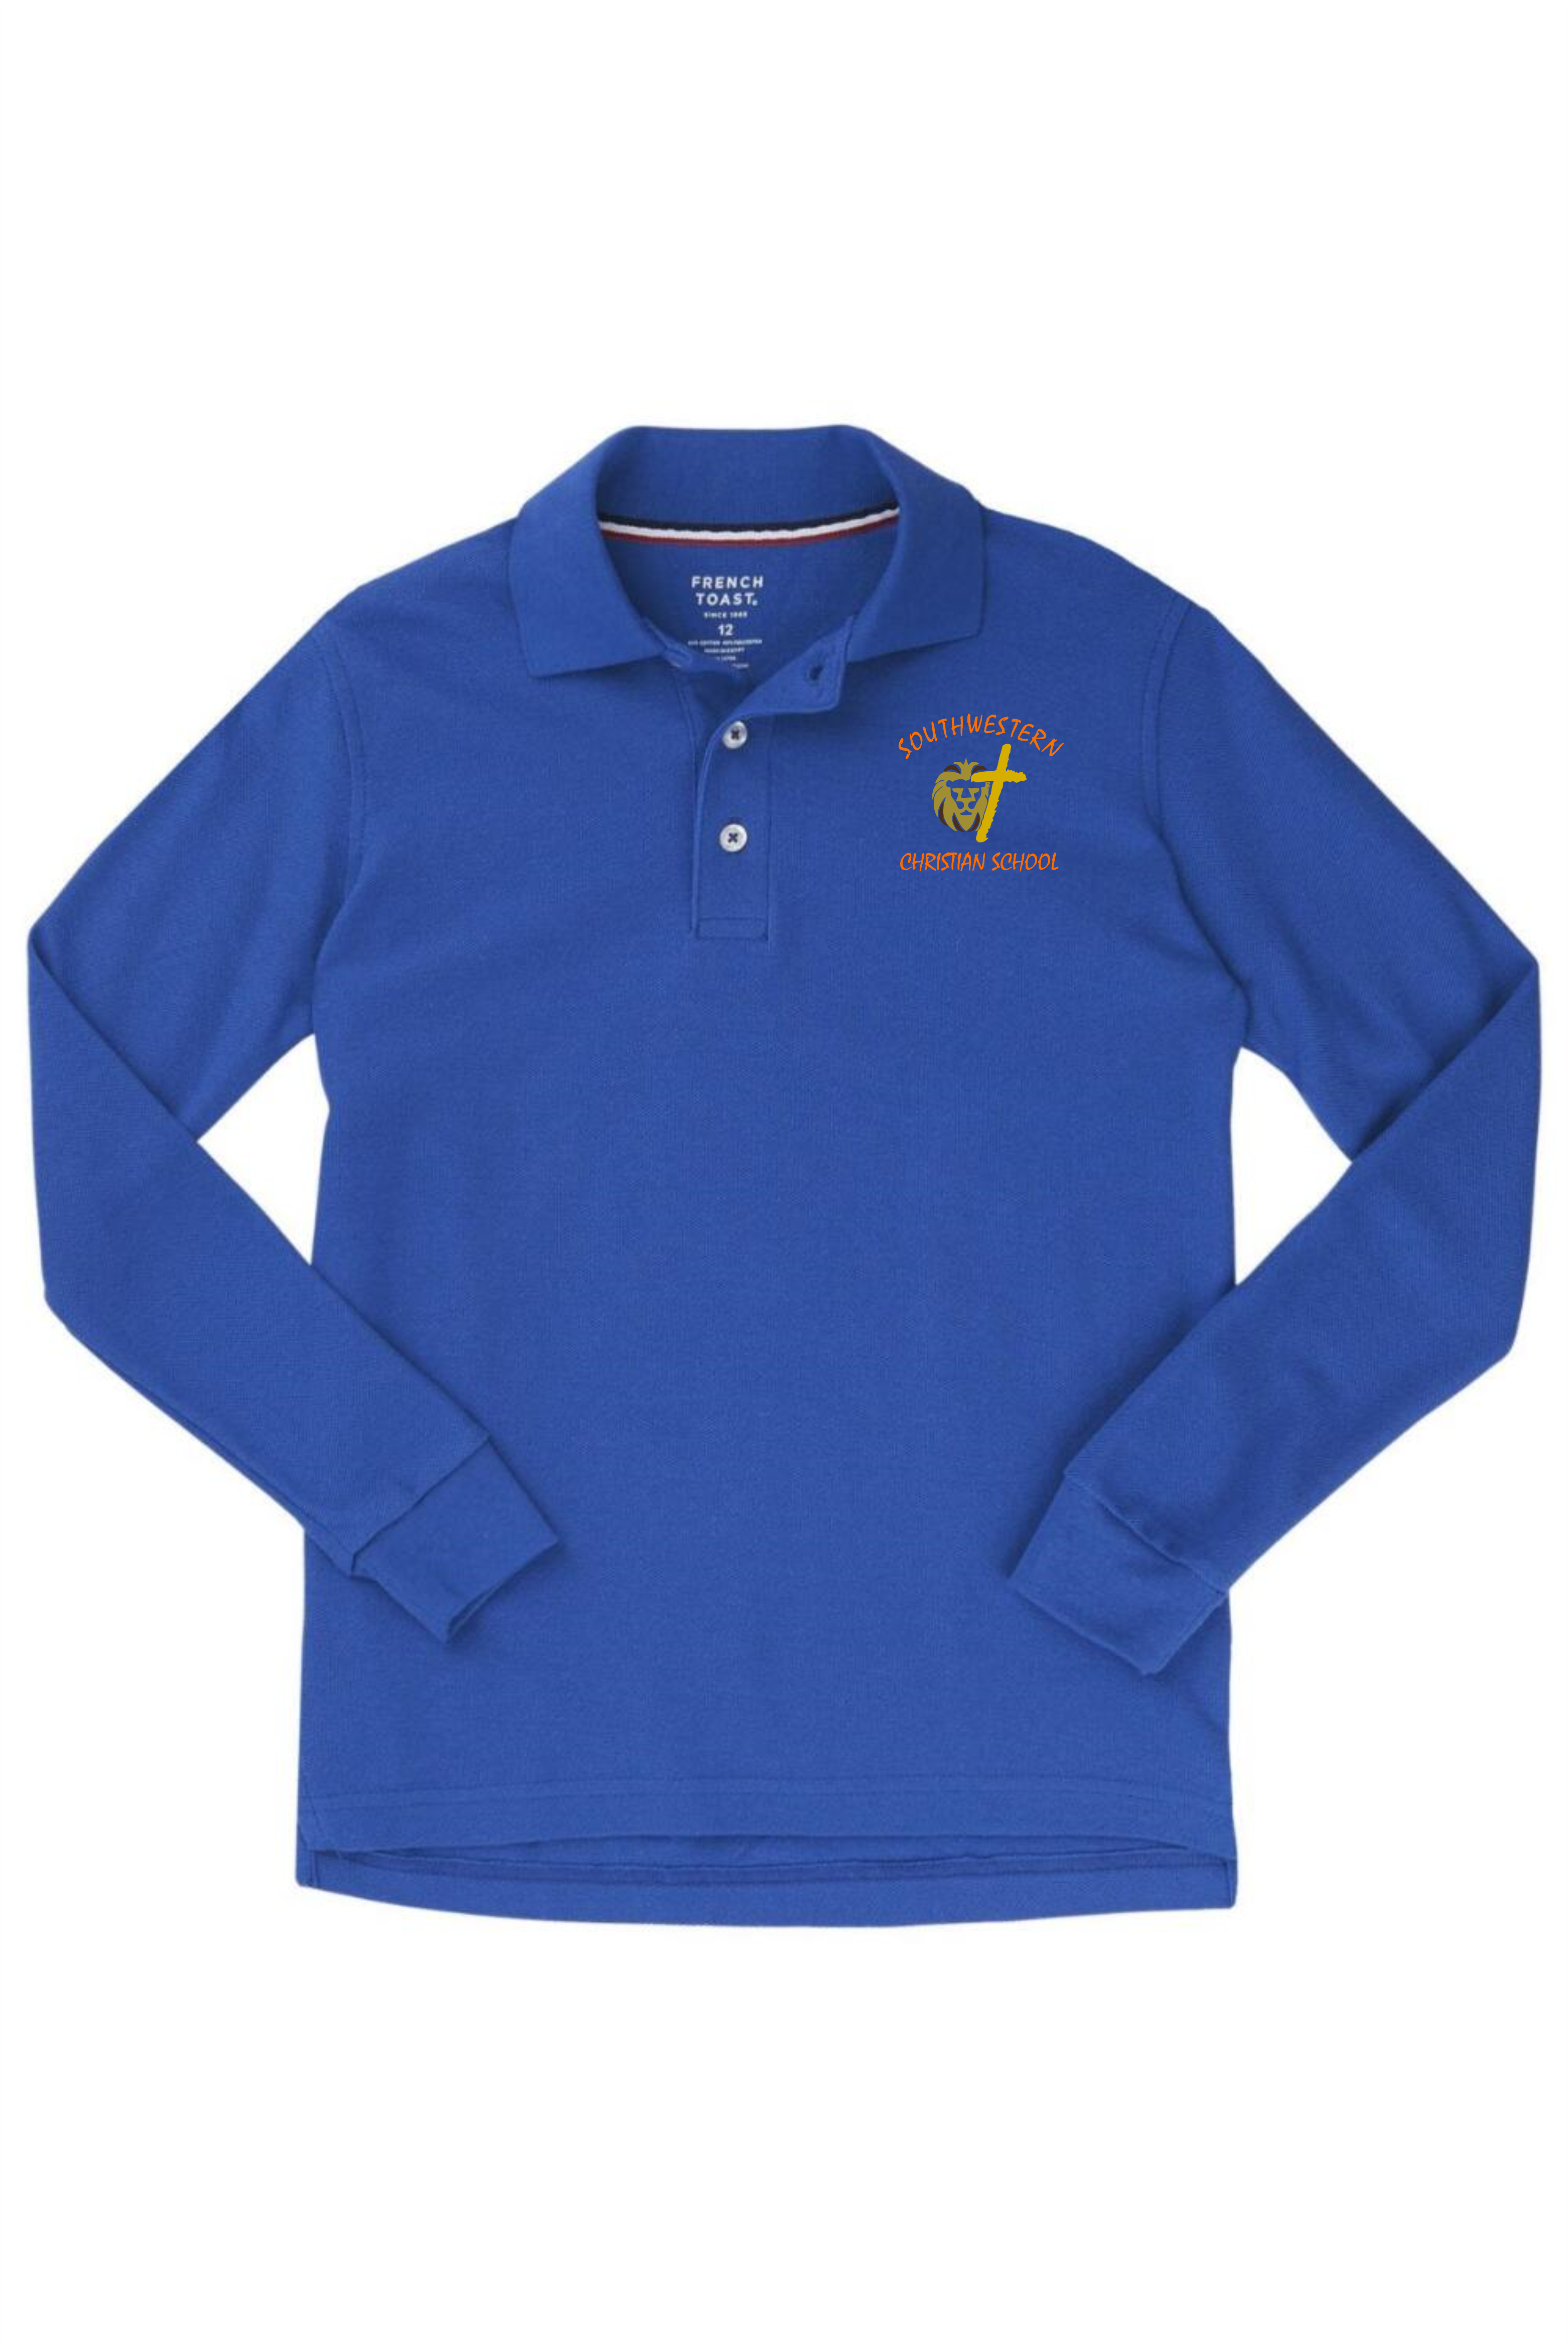 French Toast Boy's Long Sleeve Pique Polo - SWCS (Polo Size: XS - 4/5, French Toast Polo Color: Royal Blue - SWCS)